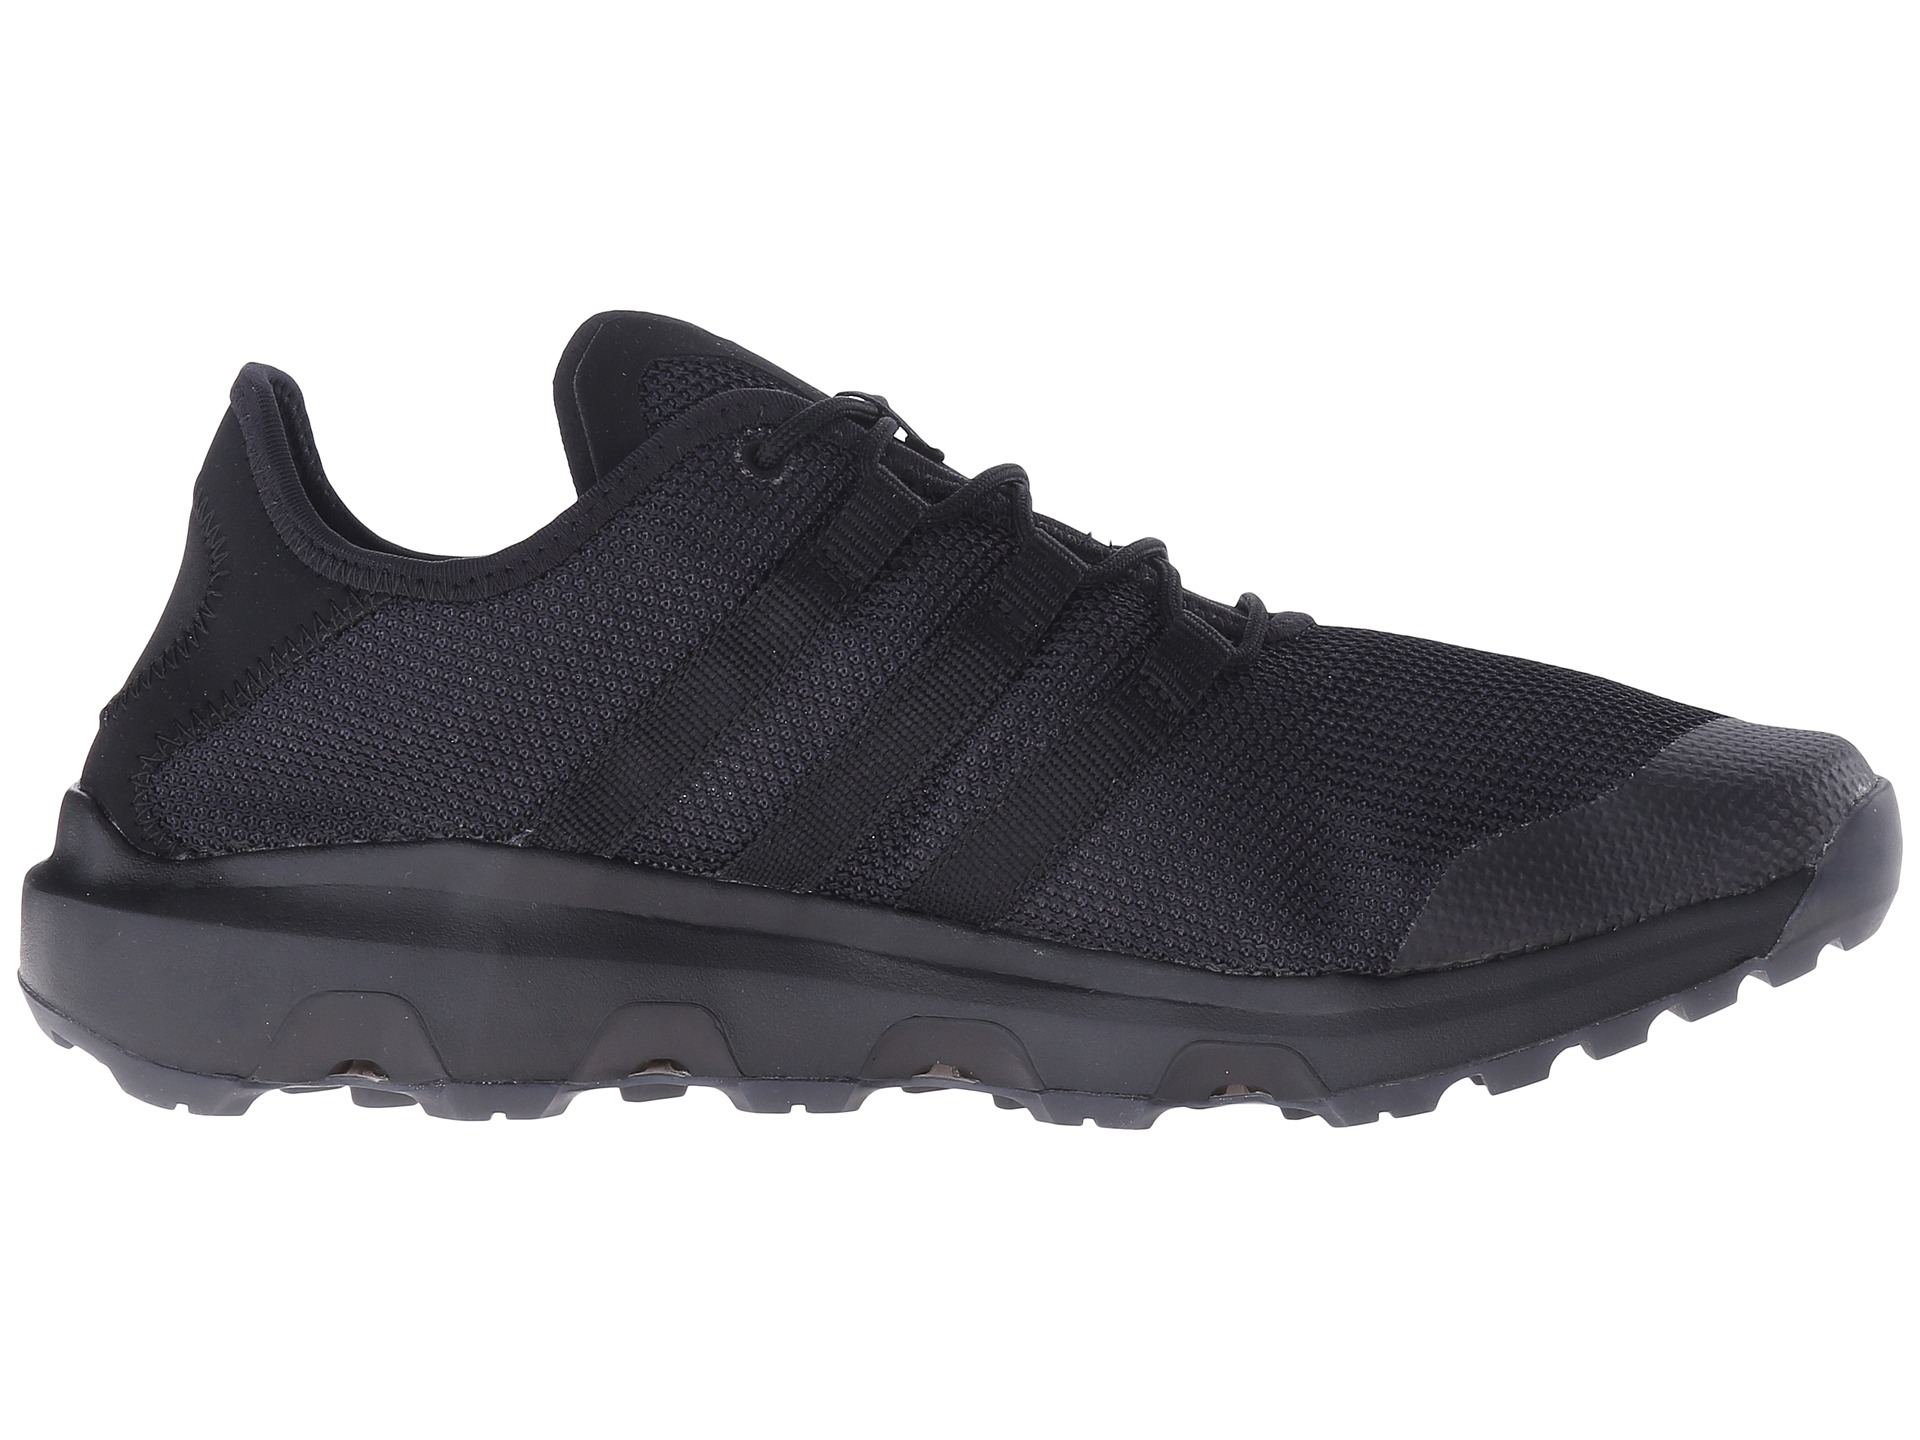 Adidas Outdoor Climacool Voyager Water Shoes Navy